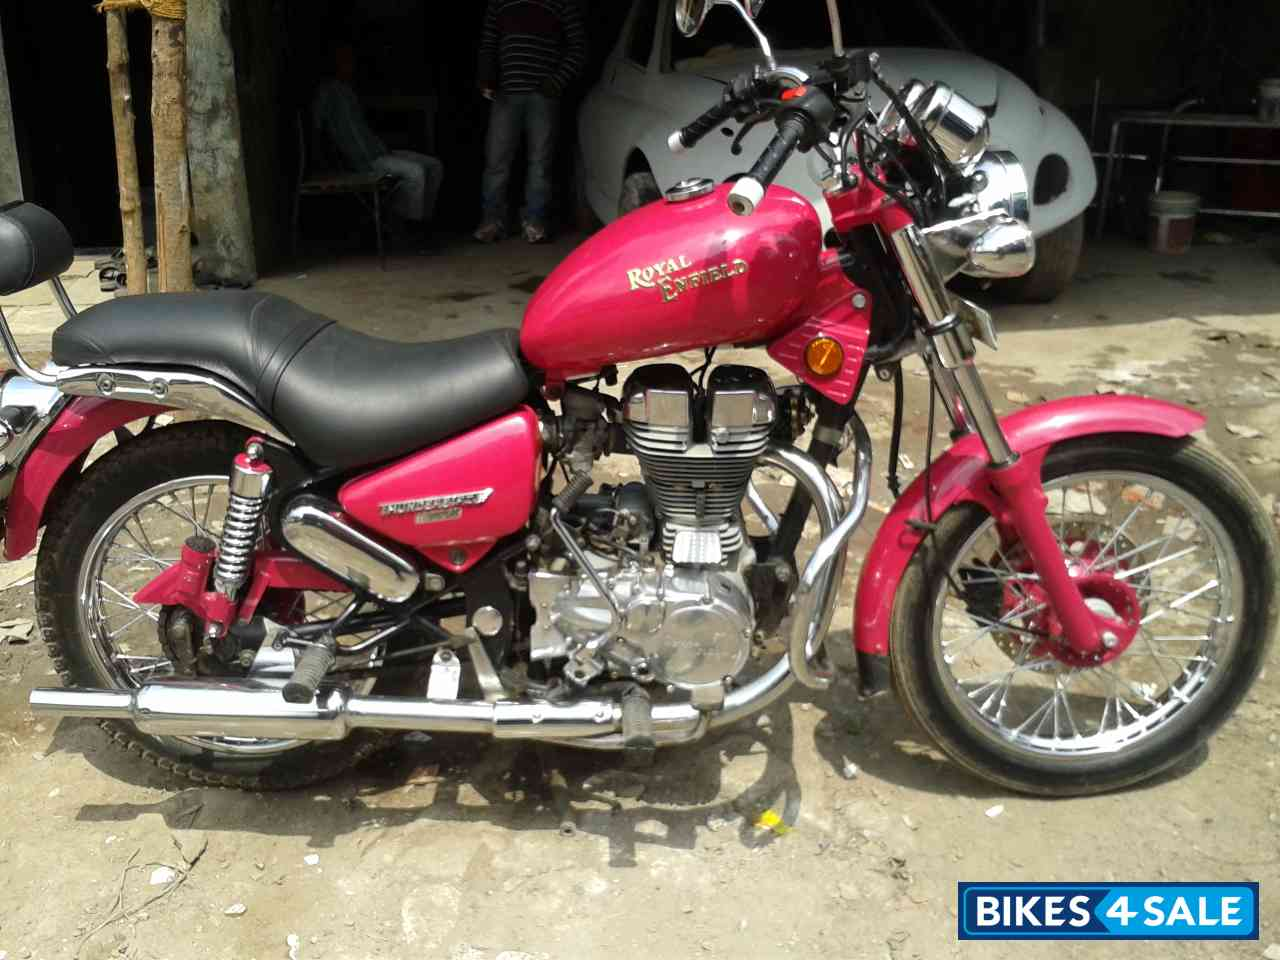 Red Royal Enfield Thunderbird TwinSpark 350